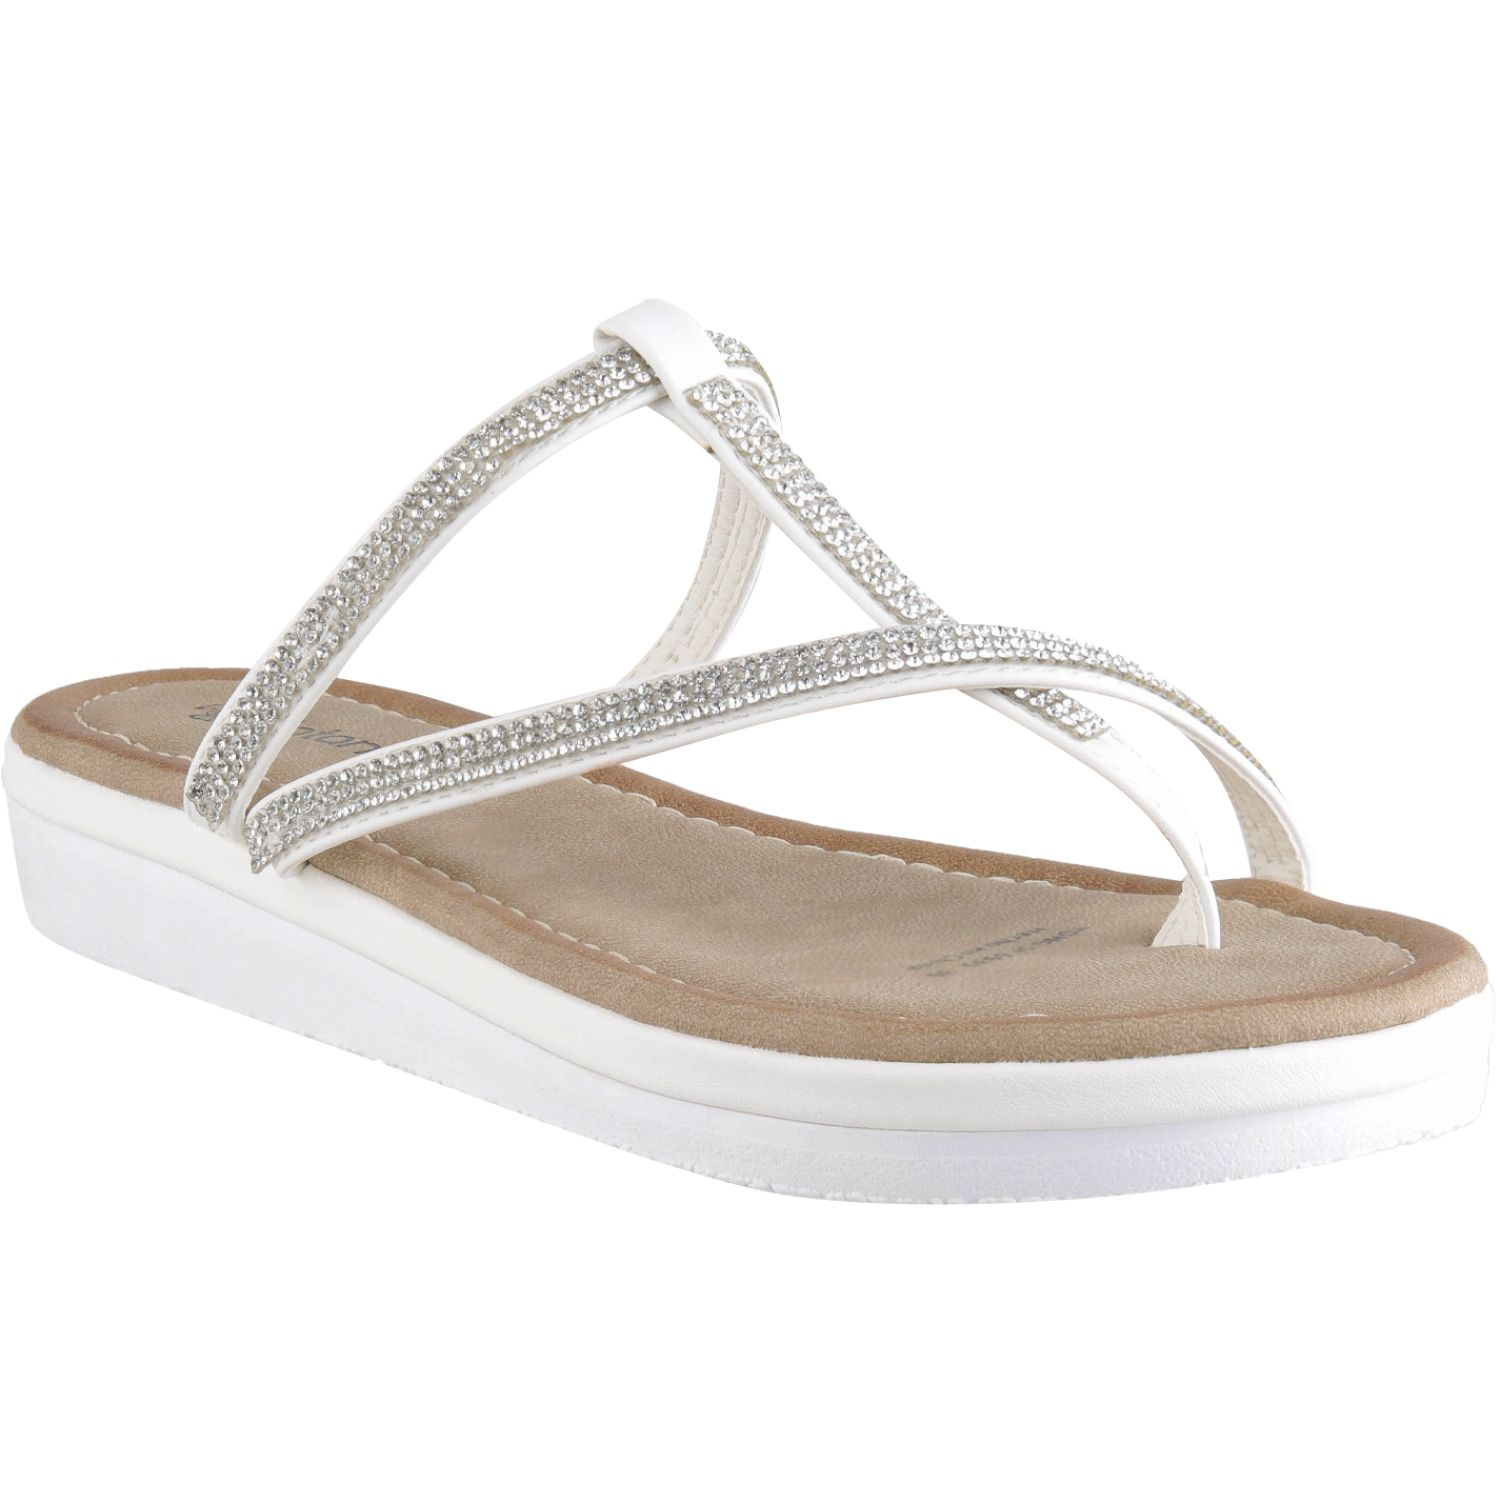 Platanitos sf 6939 Blanco Flats